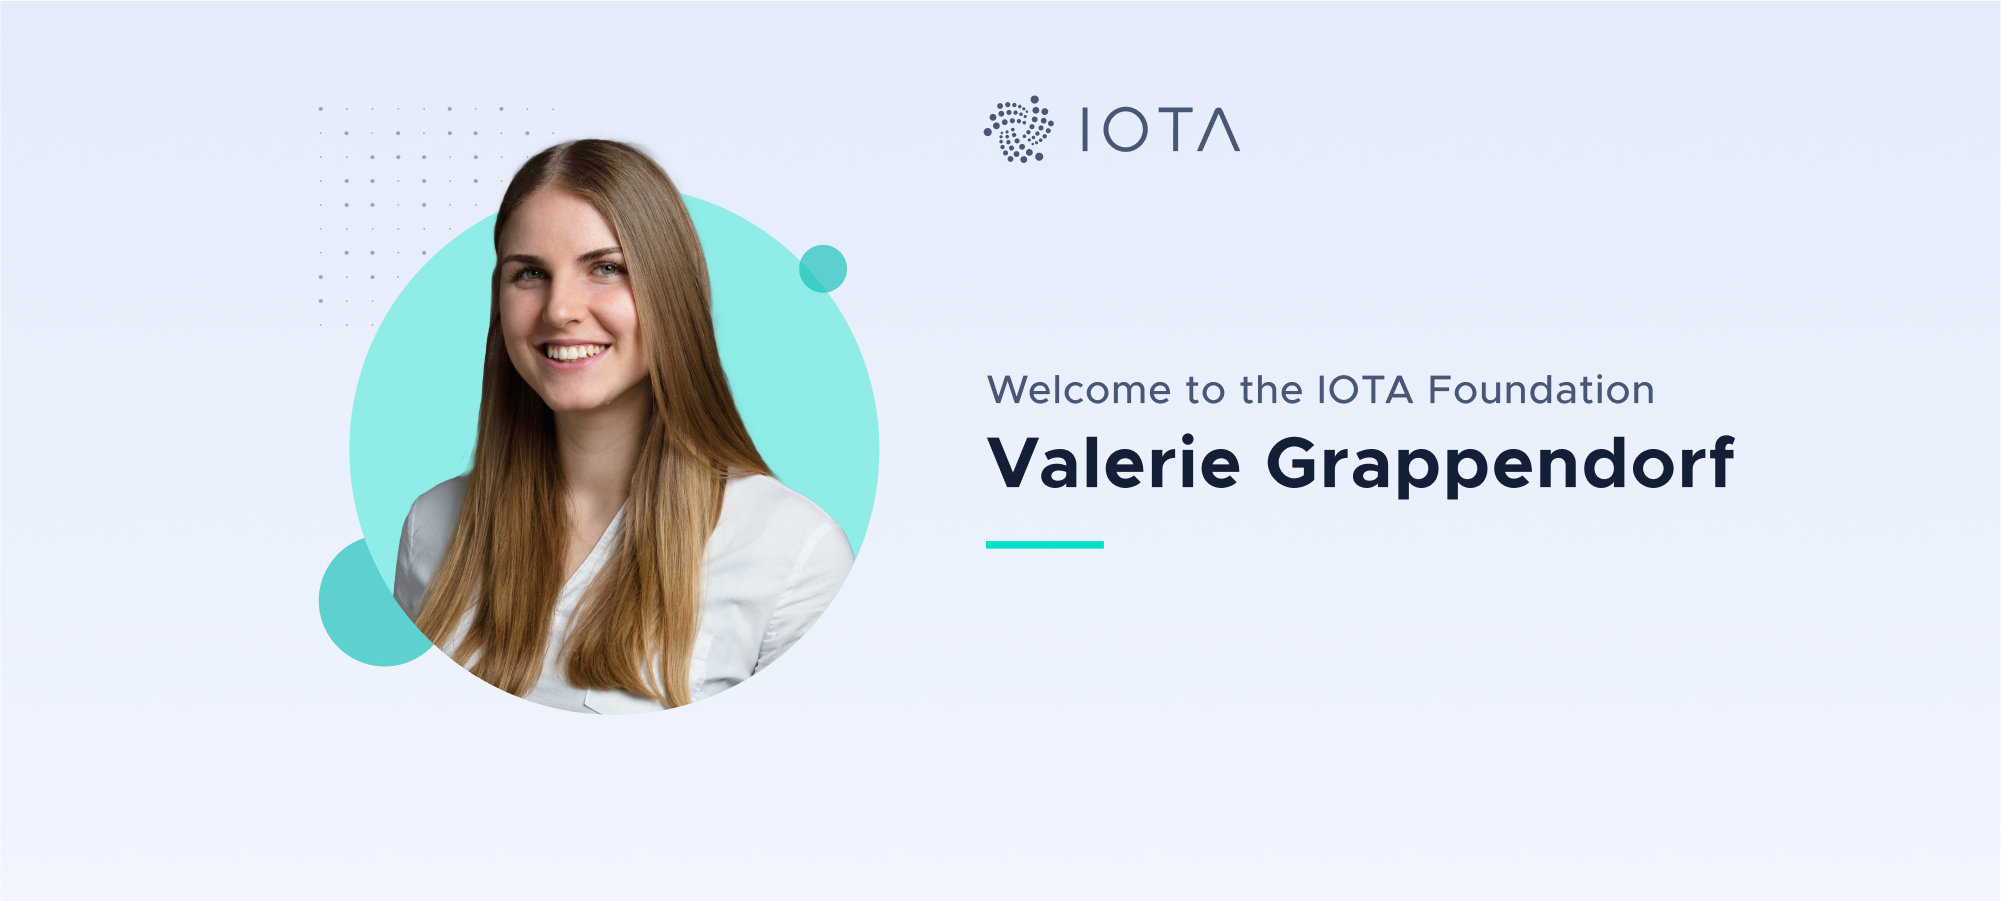 Welcome Valerie Grappendorf to the IOTA Foundation